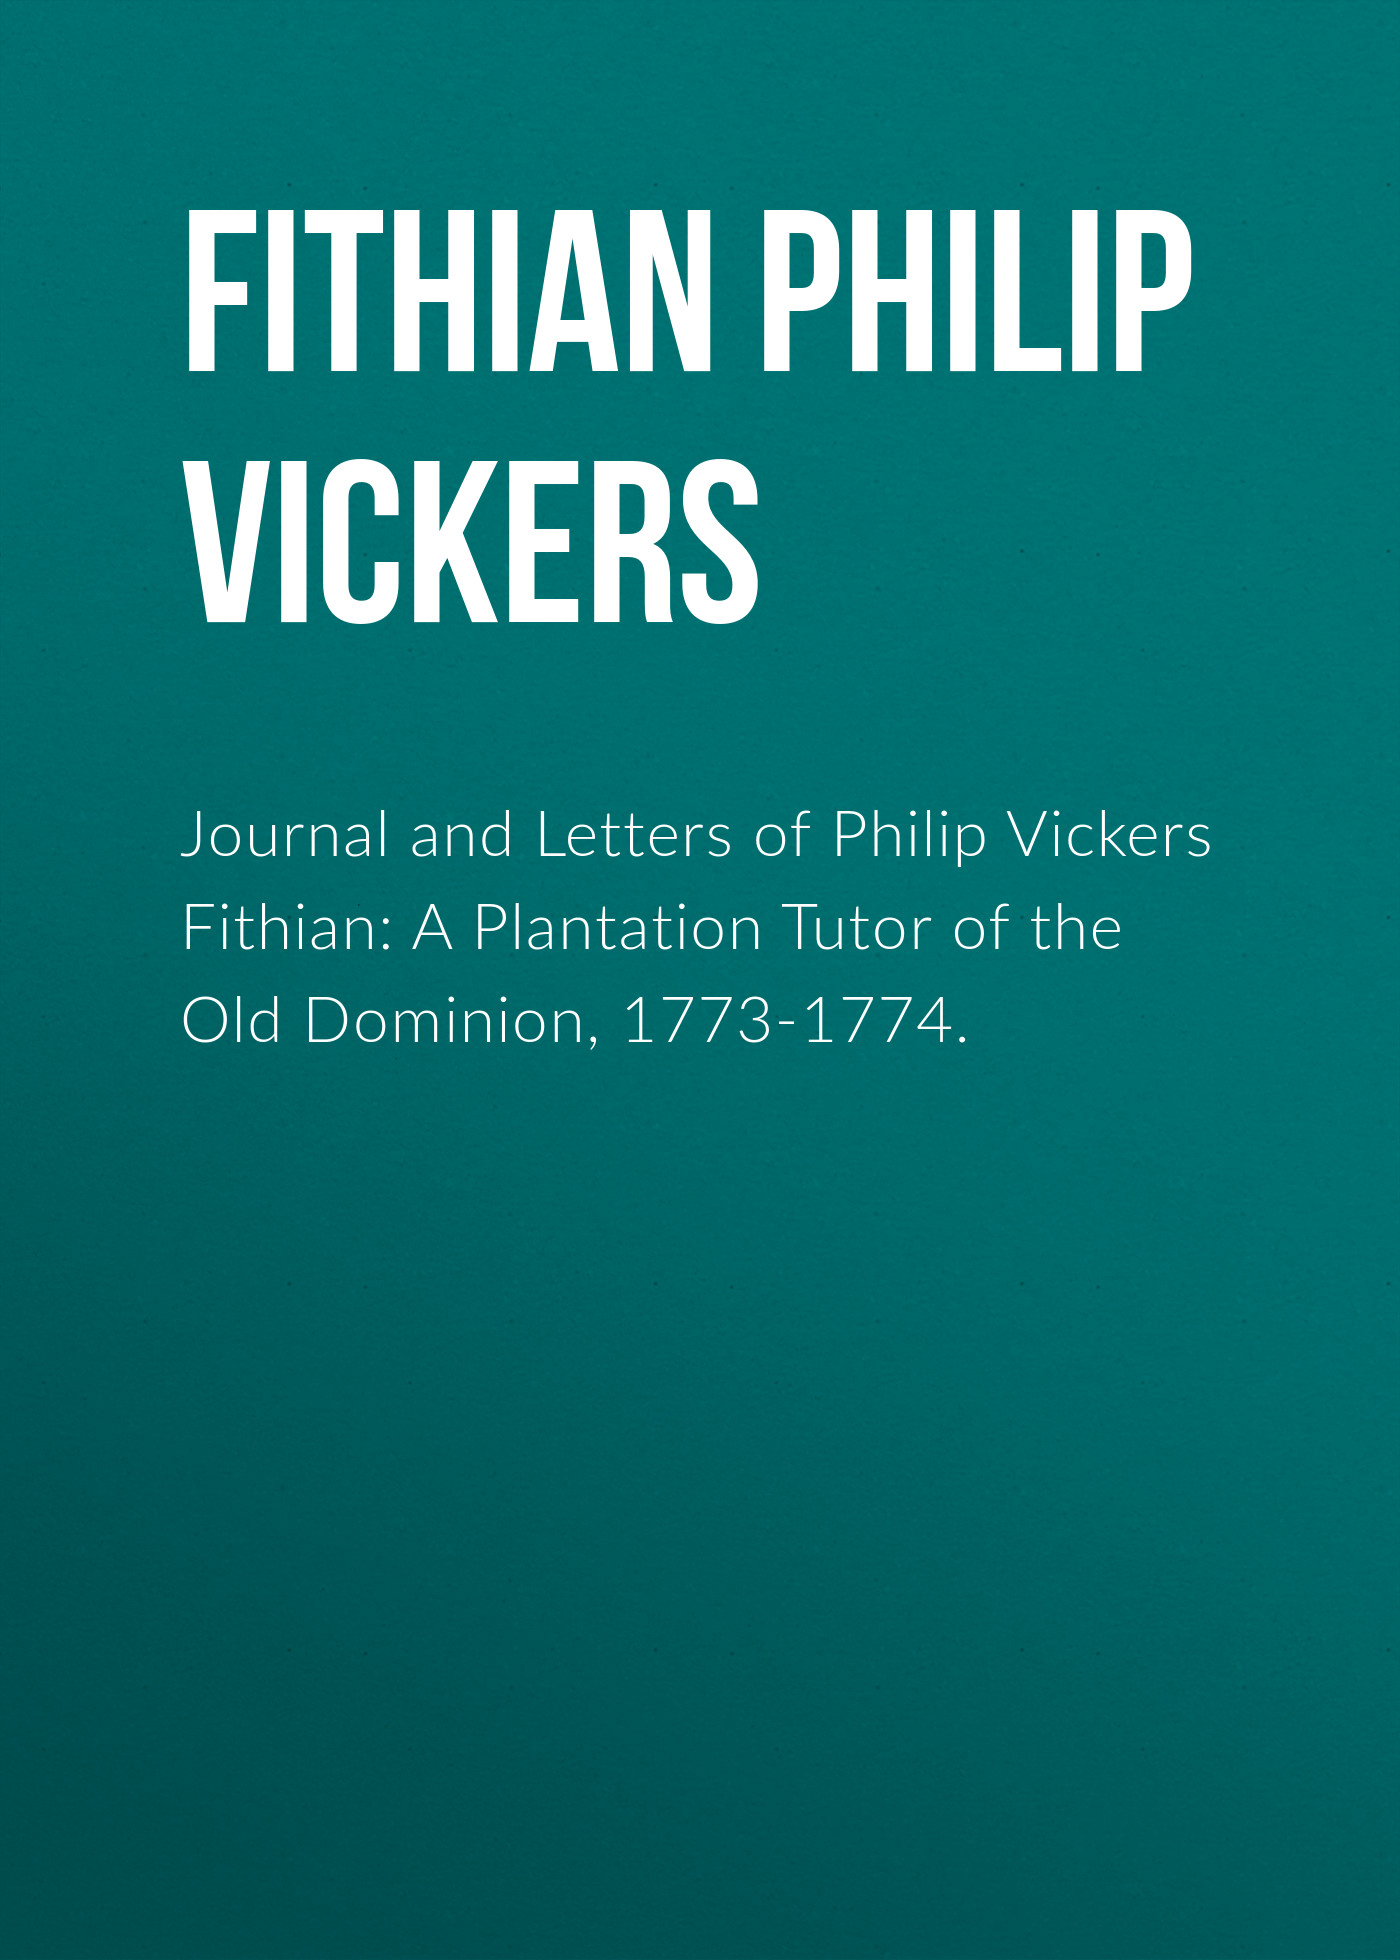 Fithian Philip Vickers Journal and Letters of Philip Vickers Fithian: A Plantation Tutor of the Old Dominion, 1773-1774. philip glass the best of philip glass 2 cd